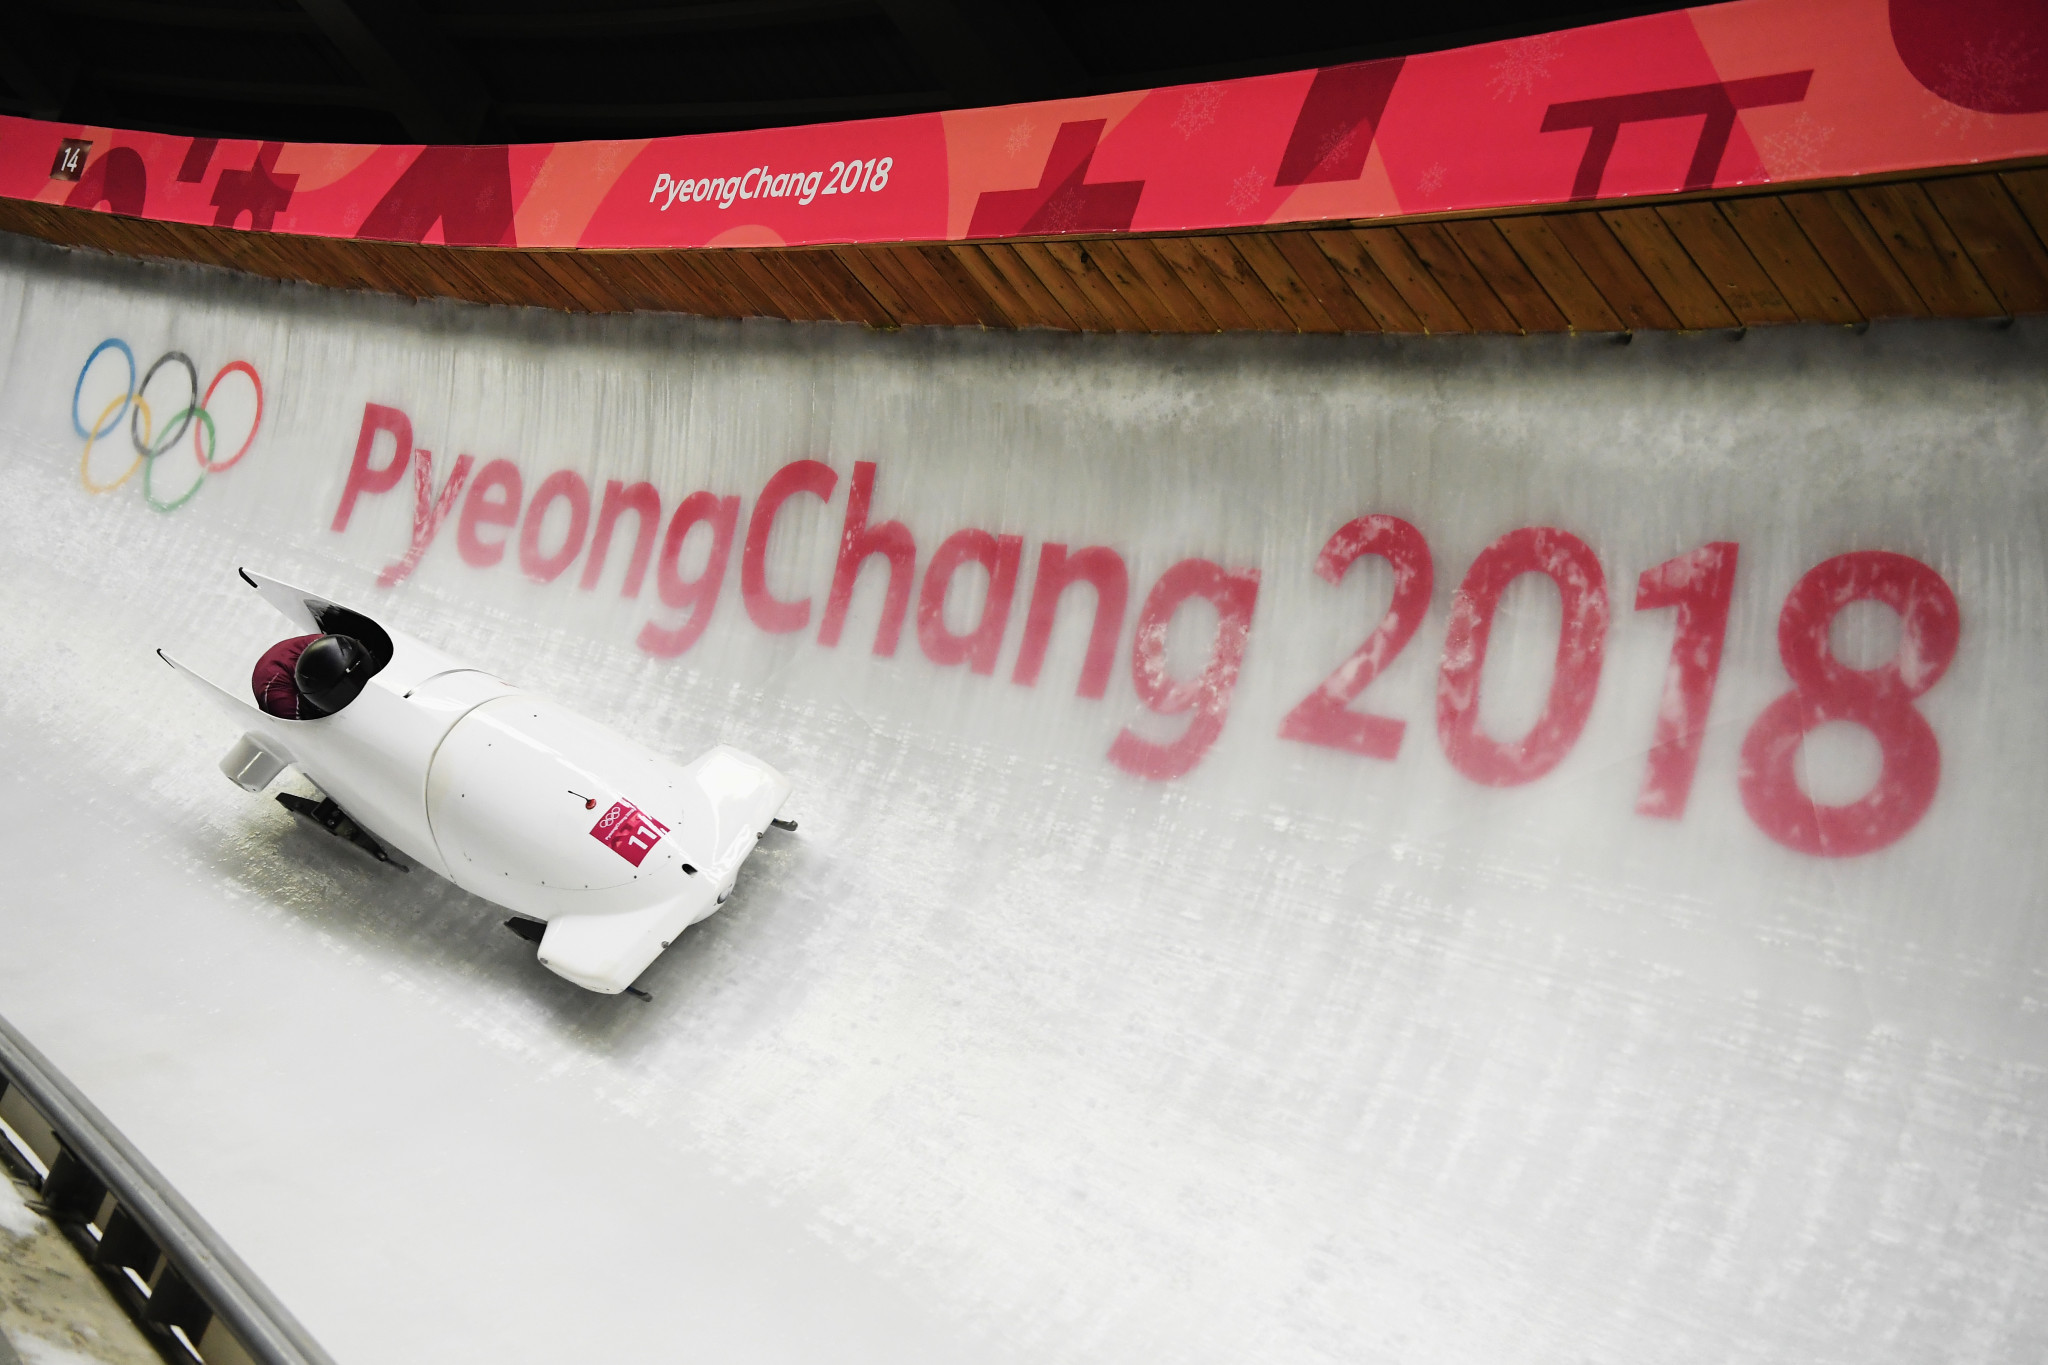 Nadezhda Sergeeva, together with pilot Anastasia Kocherzhova, finished 12th at Pyeongchang 2018 but the result was annulled following the positive drugs test ©Getty Images